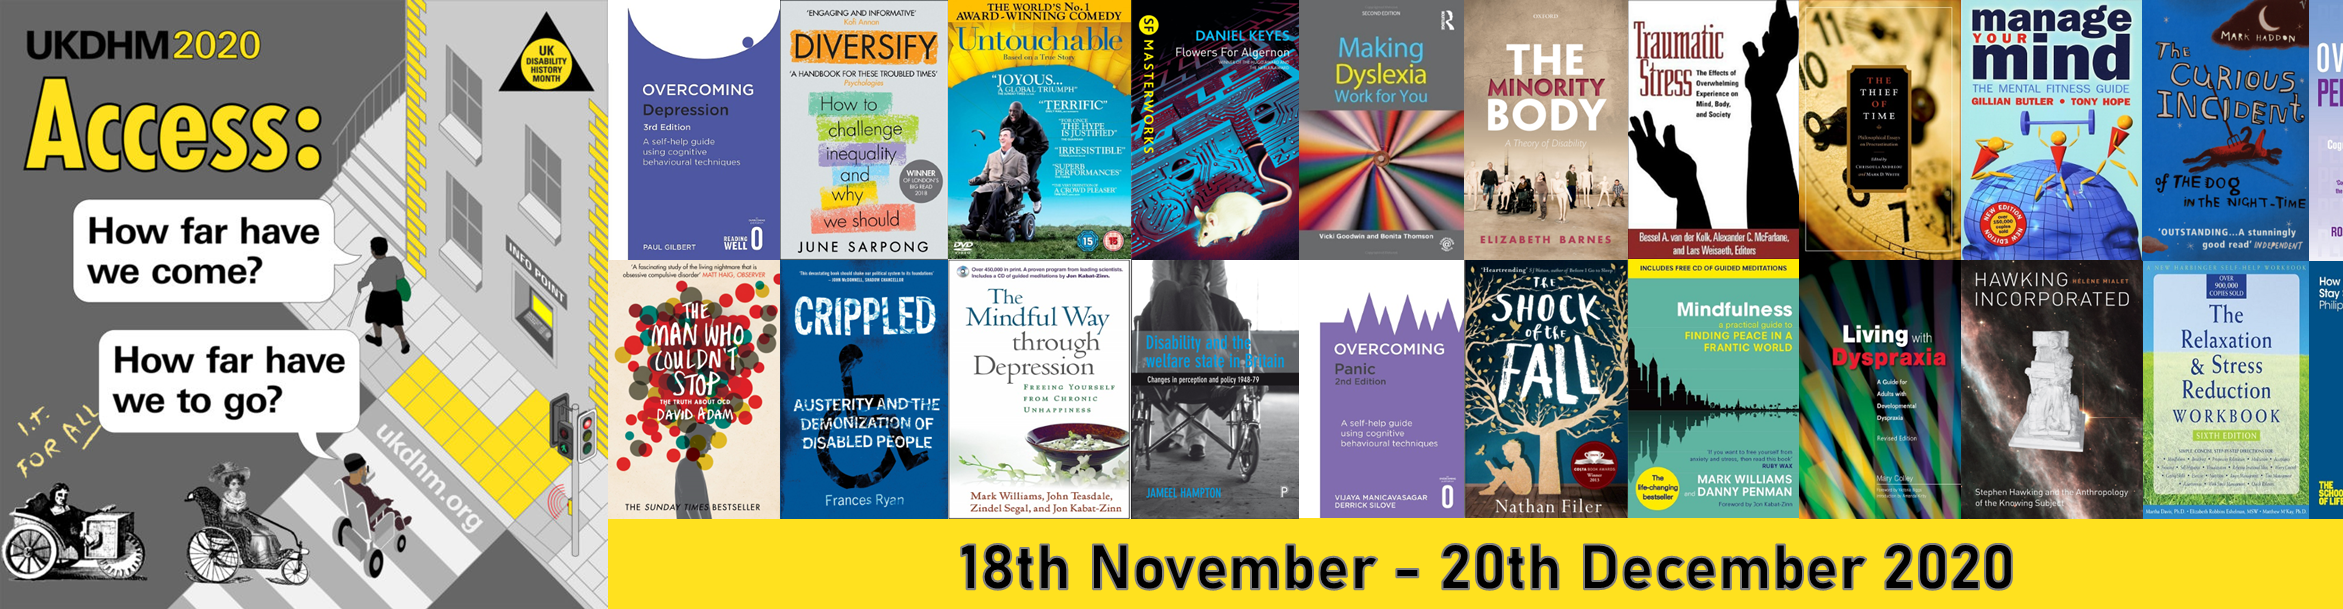 Disability History Month 2020: How far have we come? How far have we to go? 18th November - 20th December 2020